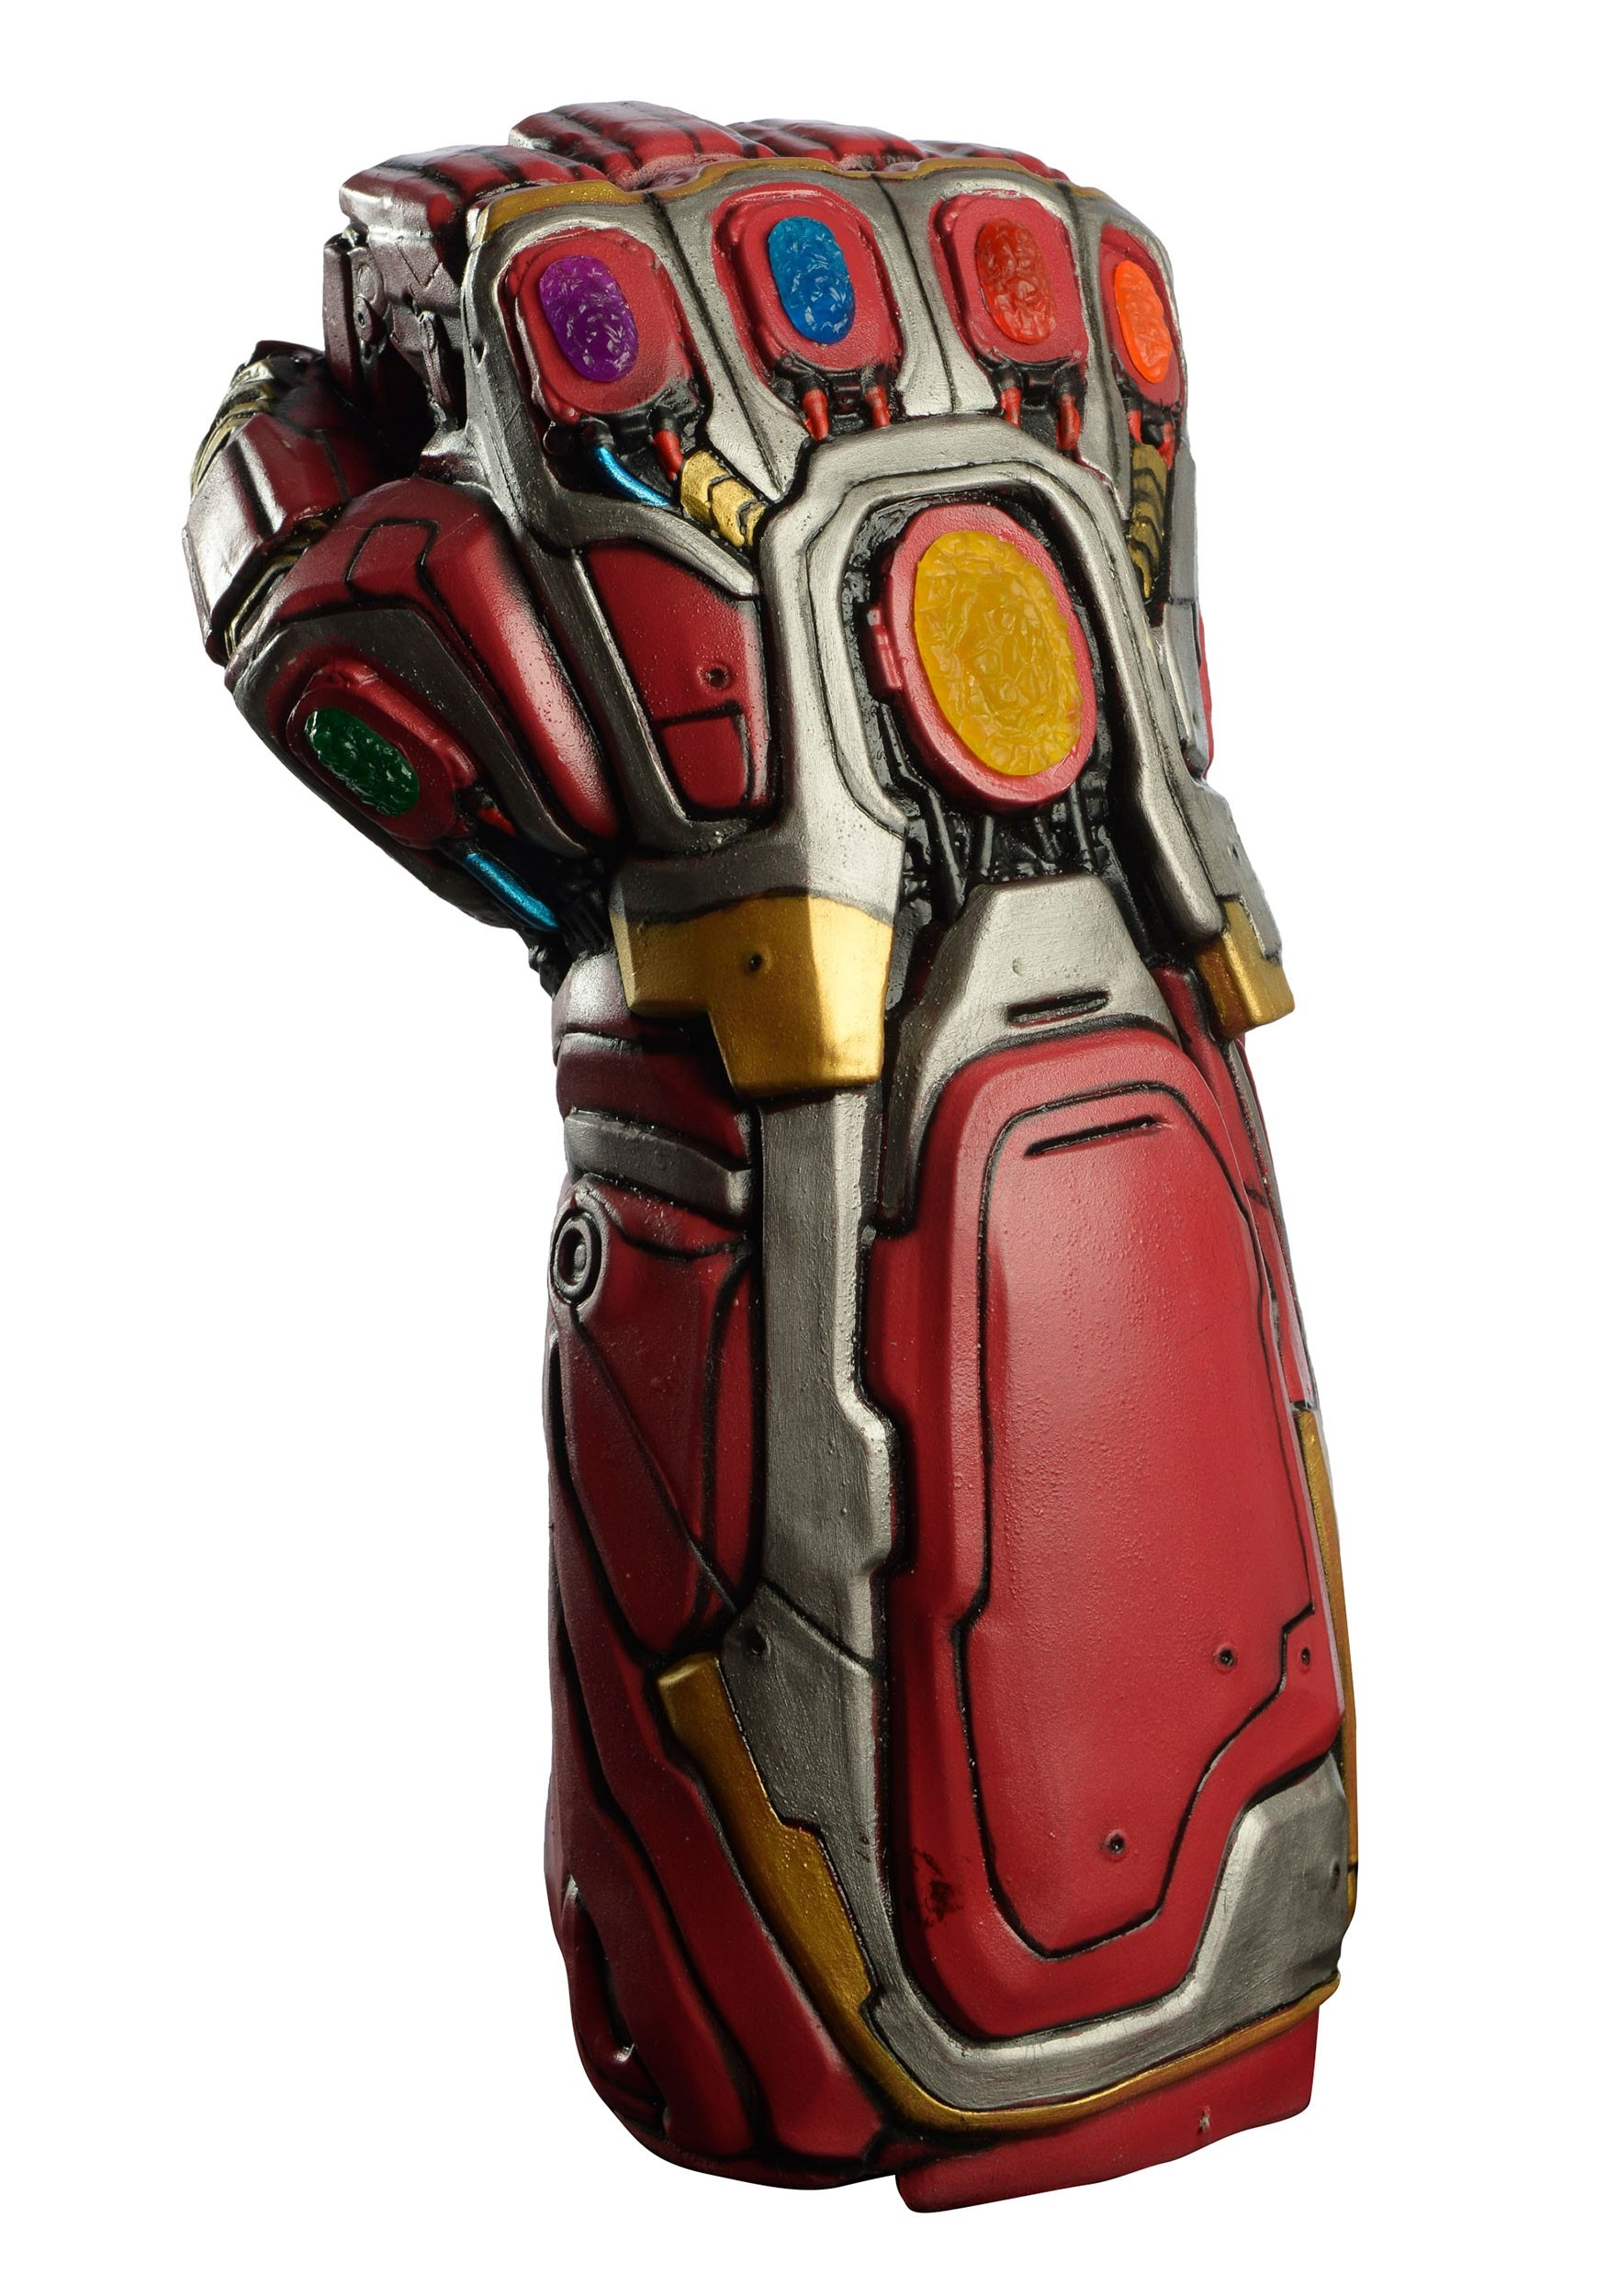 Iron Man Infinity Gauntlet for Adults